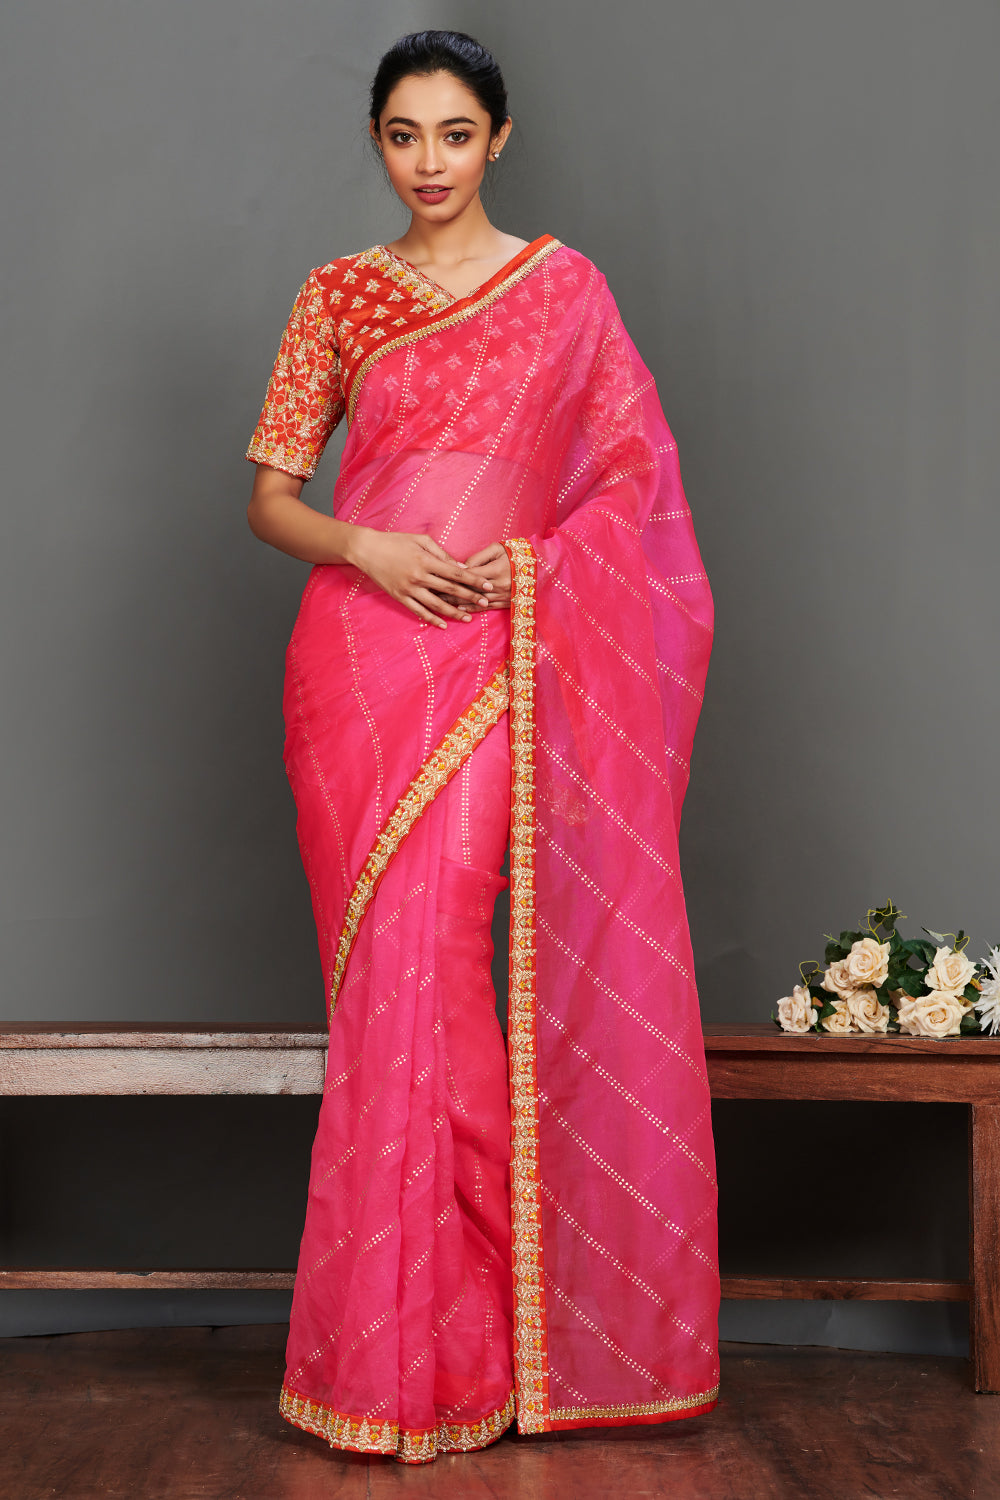 Shop gorgeous rani pink embroidered saree online in USA with red saree blouse. Make a fashion statement on festive occasions and weddings with designer sarees, embroidered saris, handwoven saris, party wear sarees from Pure Elegance Indian fashion store in USA.-full view